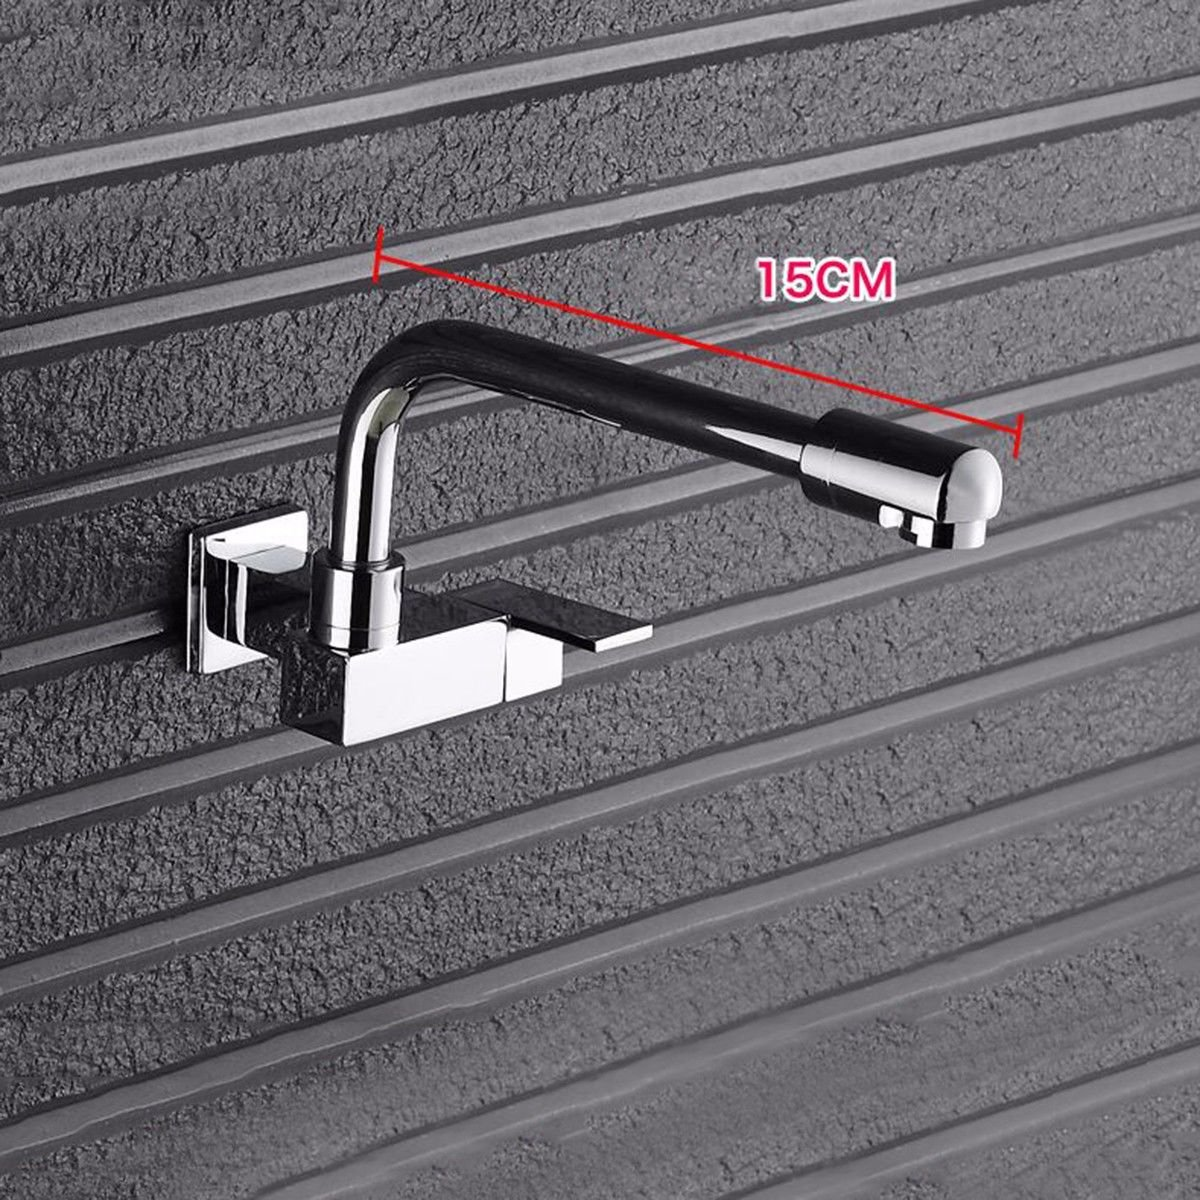 C2 MulFaucet Lengthening mop Pool Faucet Wall-Mounted Single Cold Balcony Laundry Pool mop Pool Kitchen Sink Faucet D1